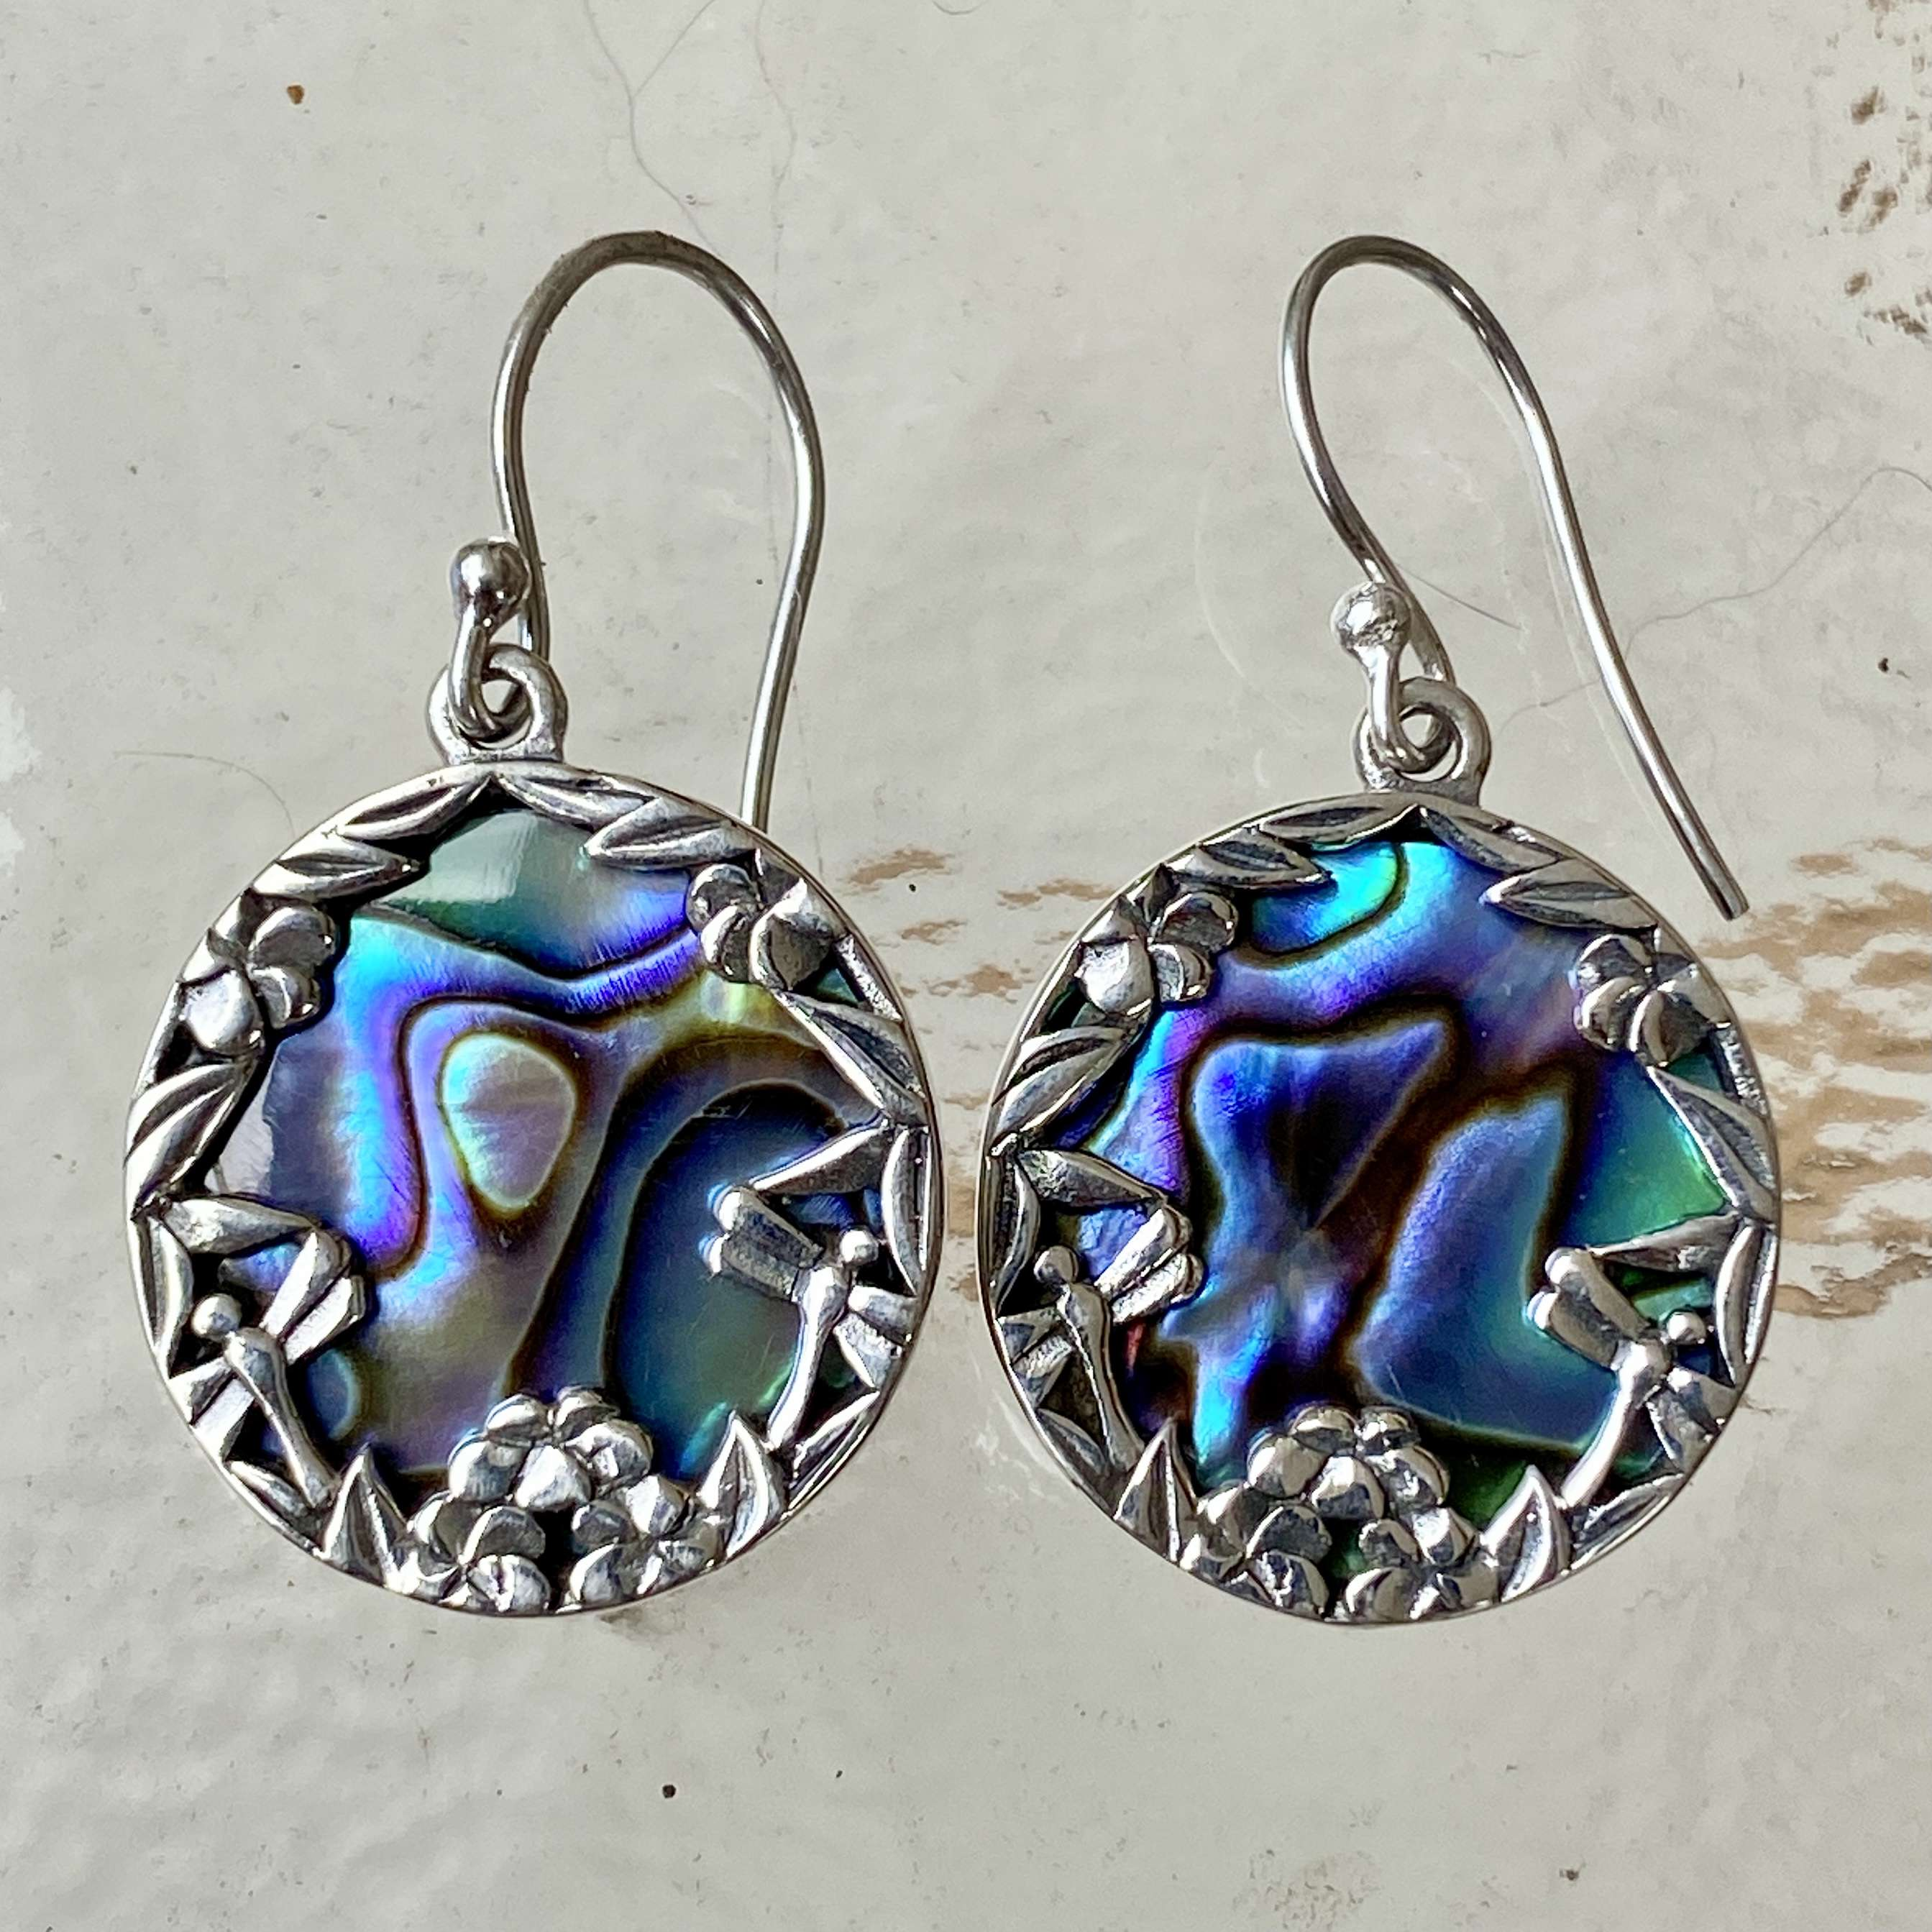 (HANDMADE 925 BALI STERLING SILVER EARRINGS WITH ABALONE)